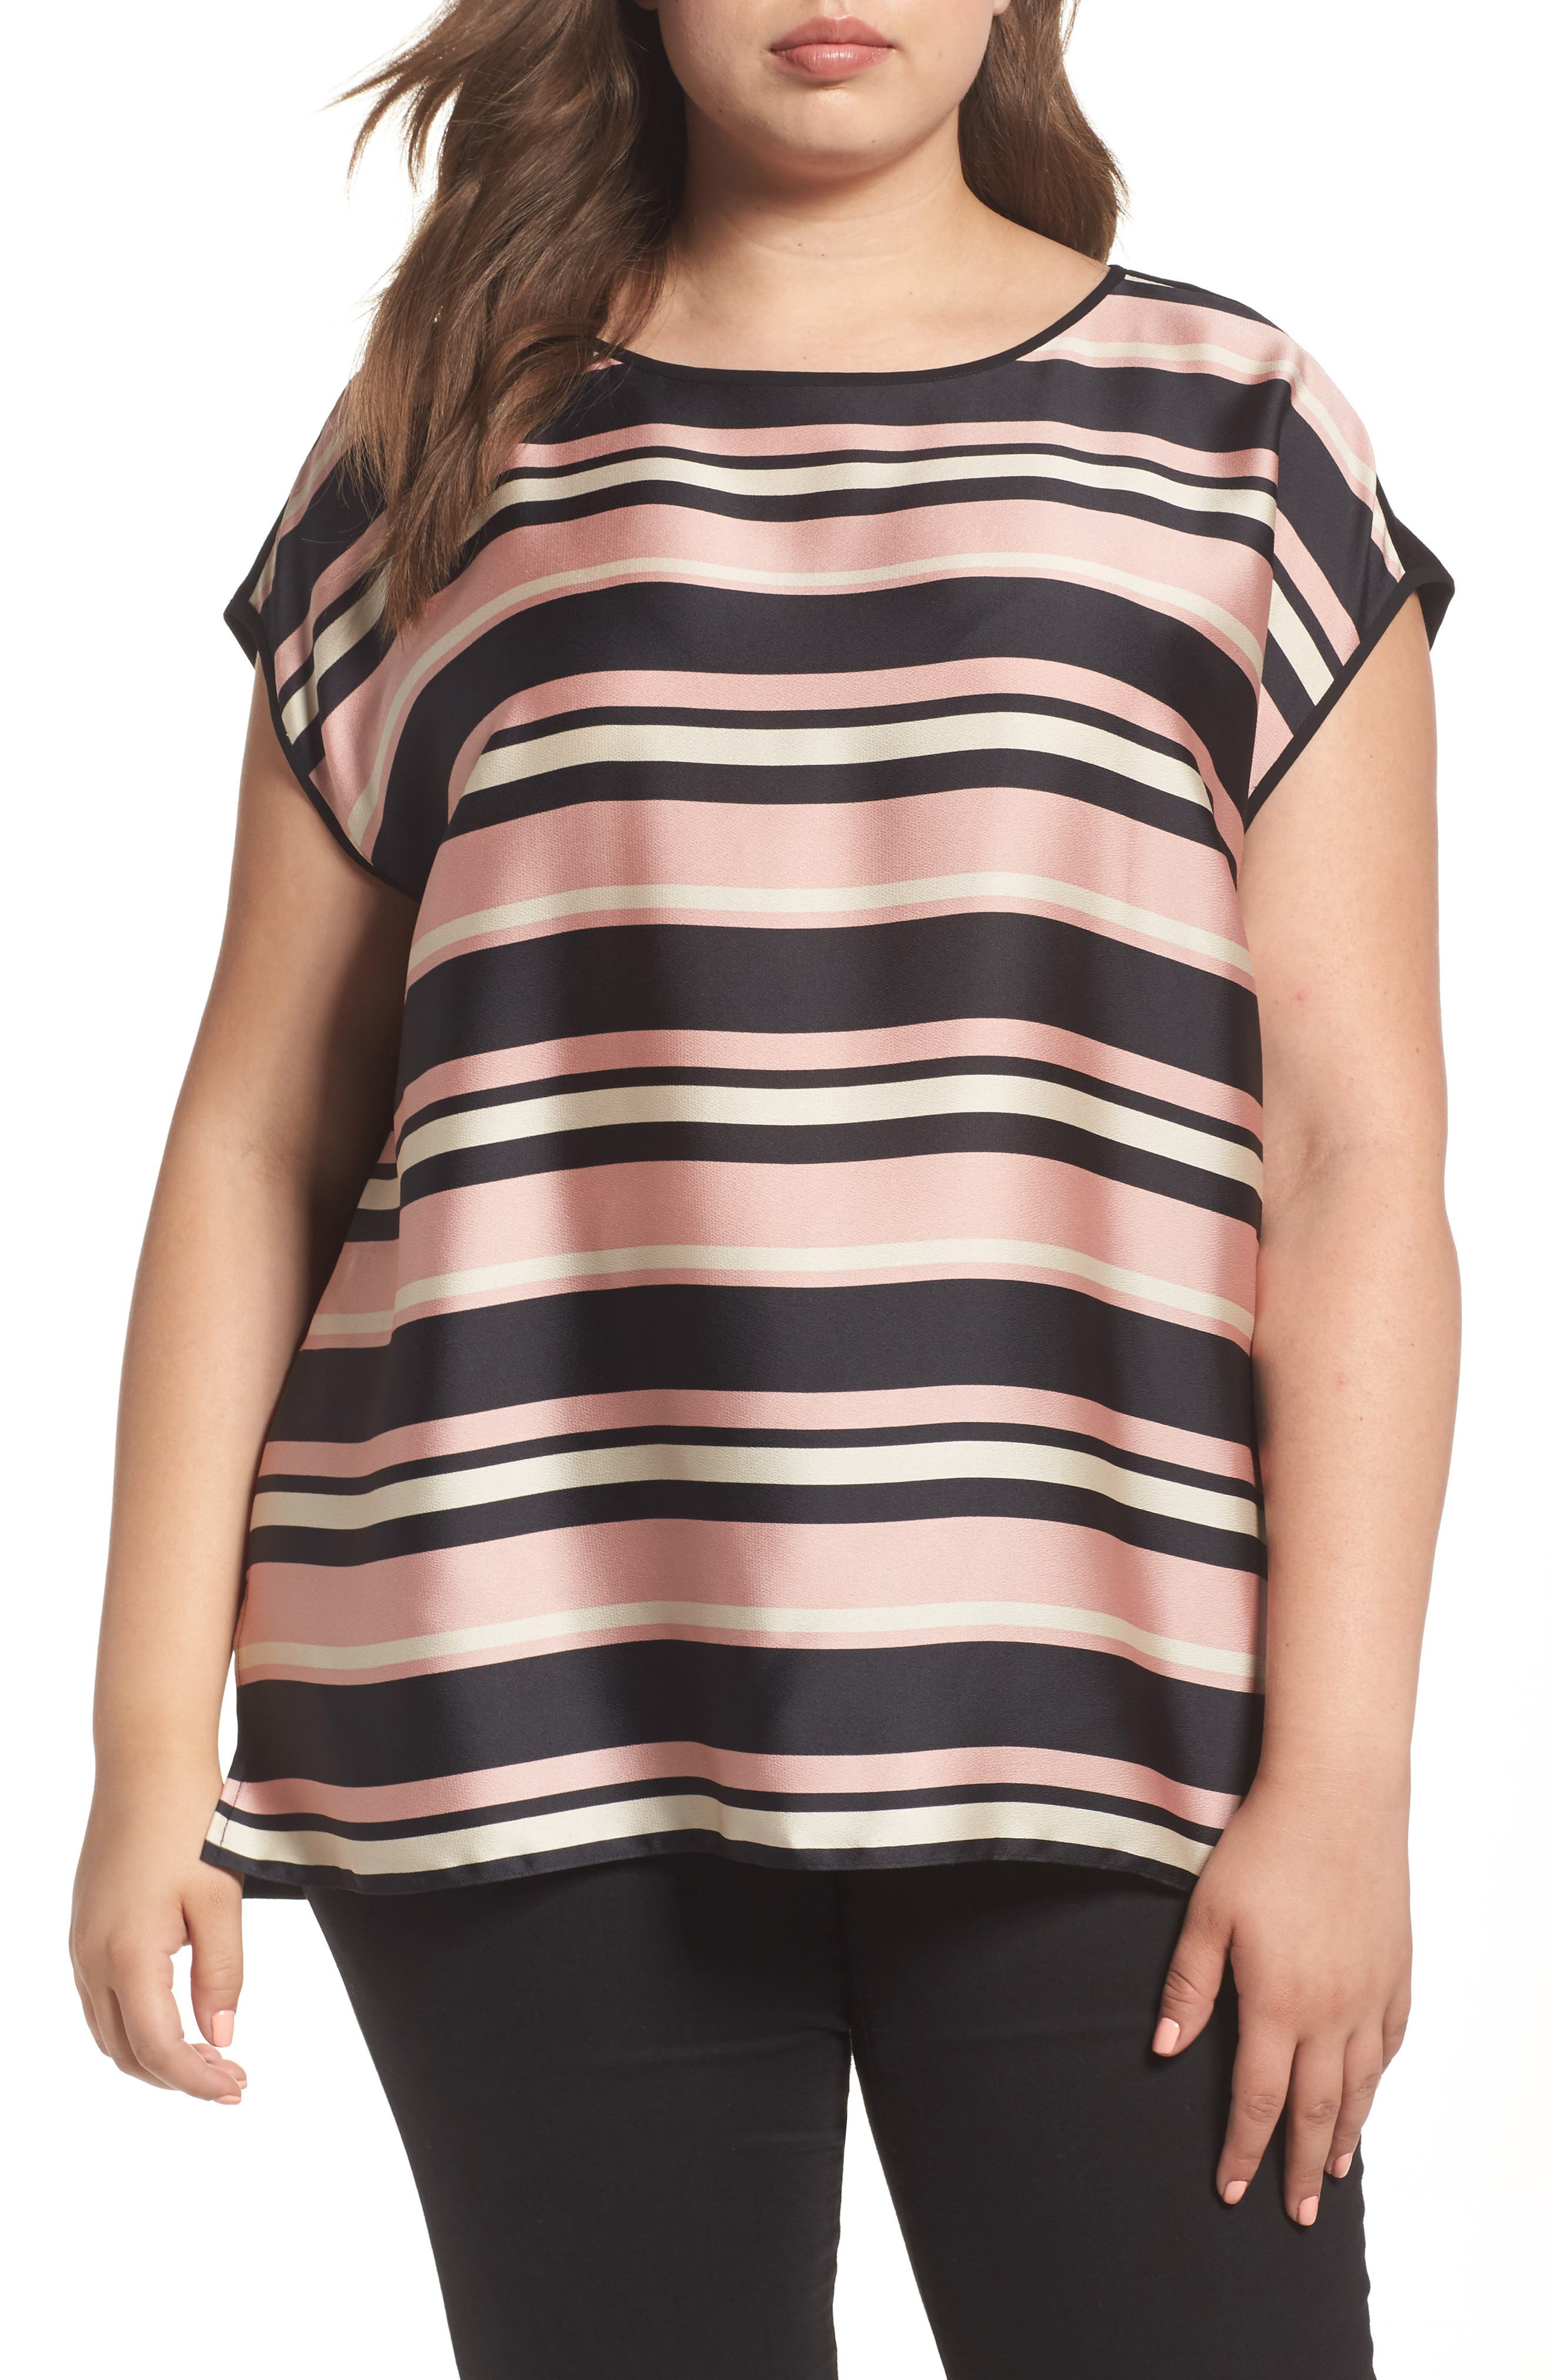 Vince Camuto Modern Chords Mixed Media Top (Plus Size)